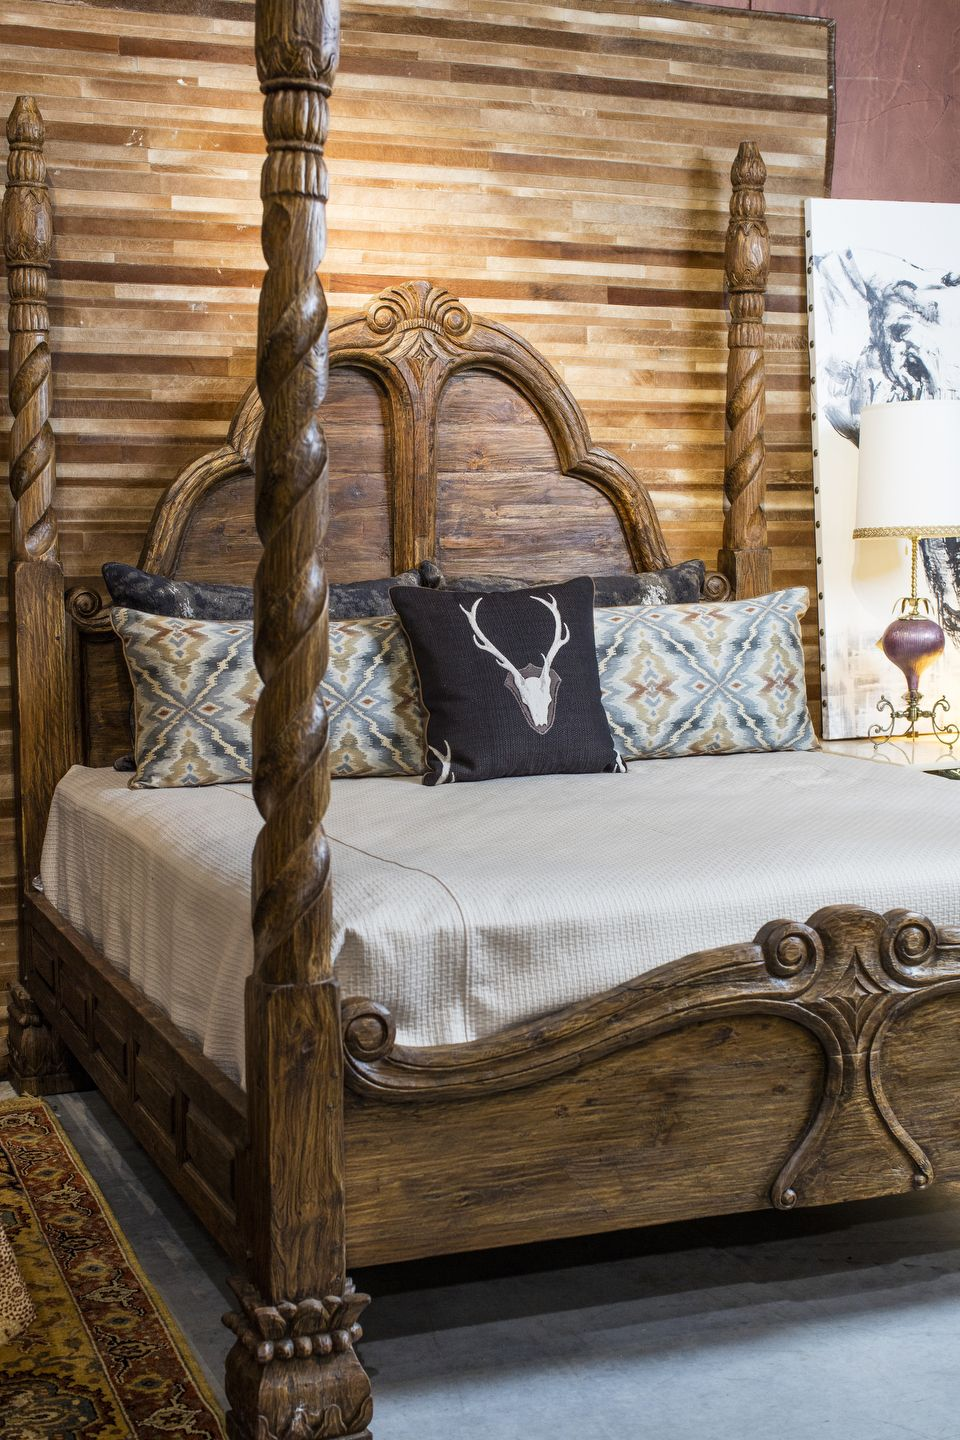 4 Poster King Bed Western Bedroom Decor Western Home Decor Rustic Bedroom